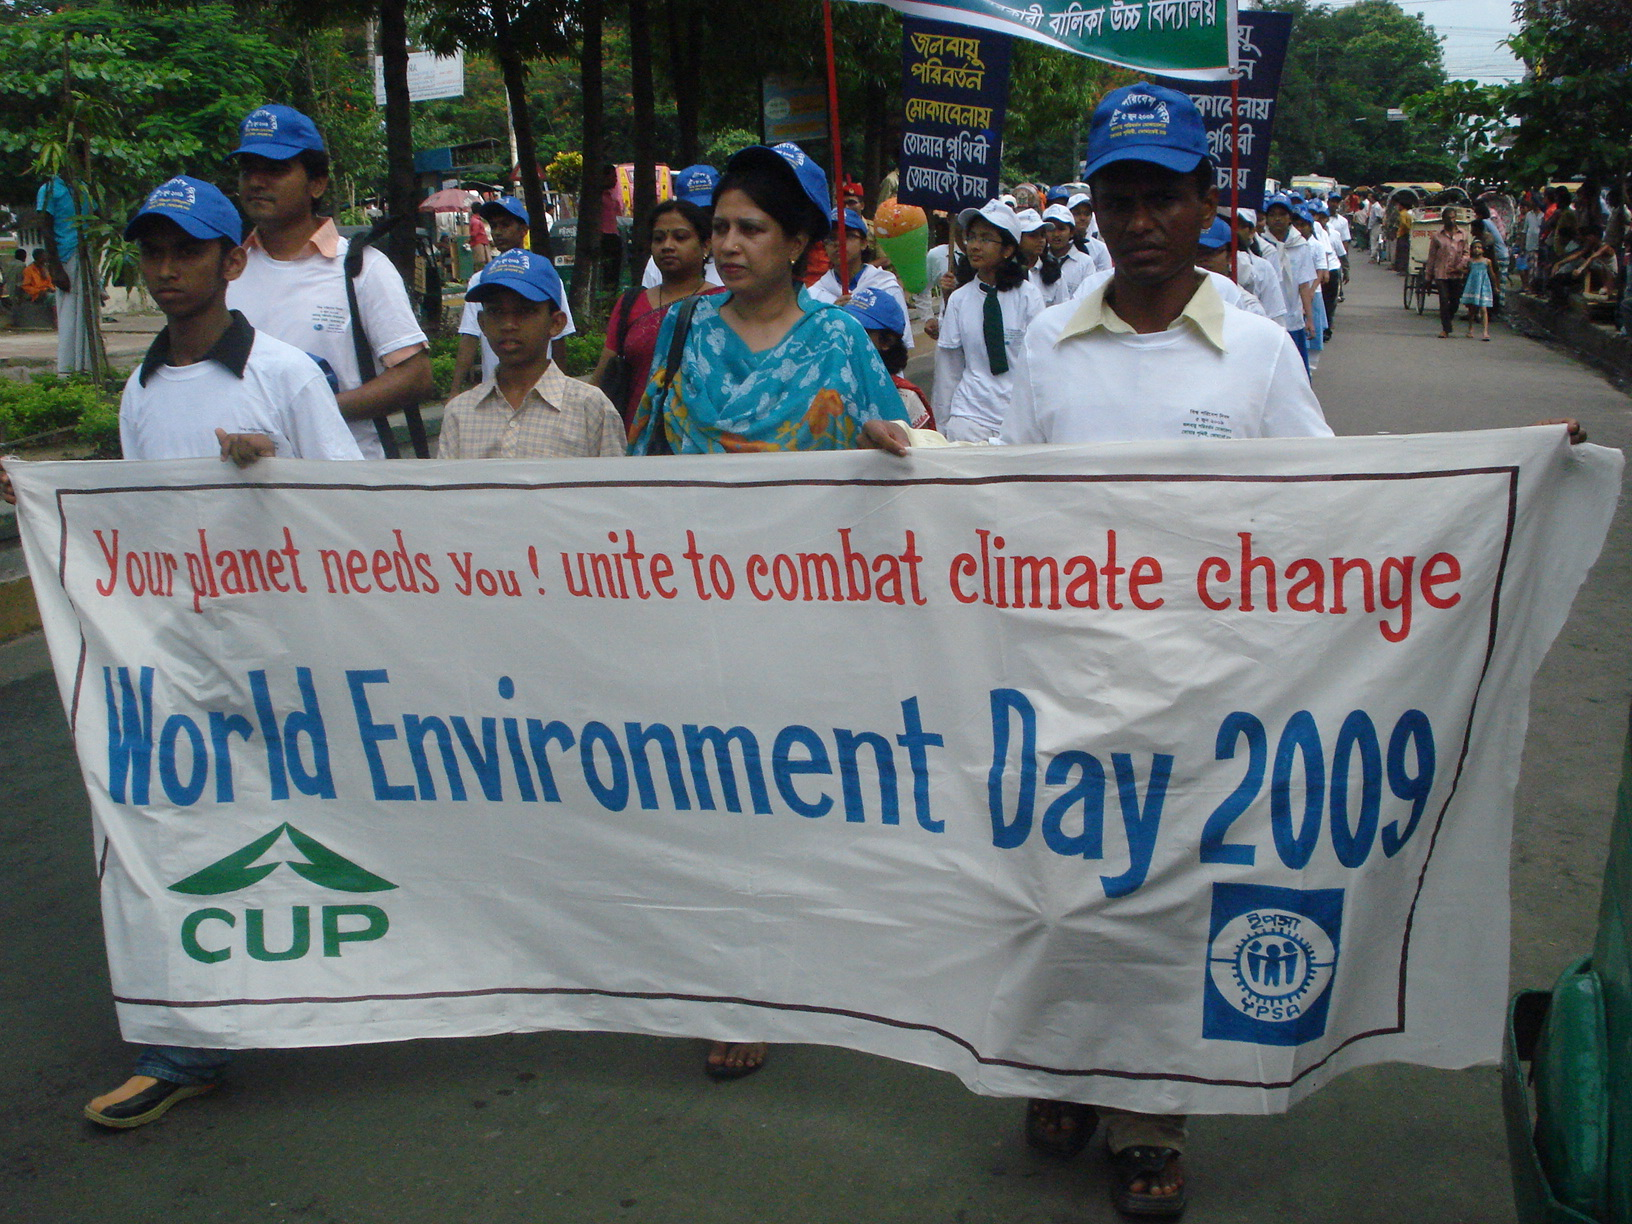 Rally on Environment day 2009